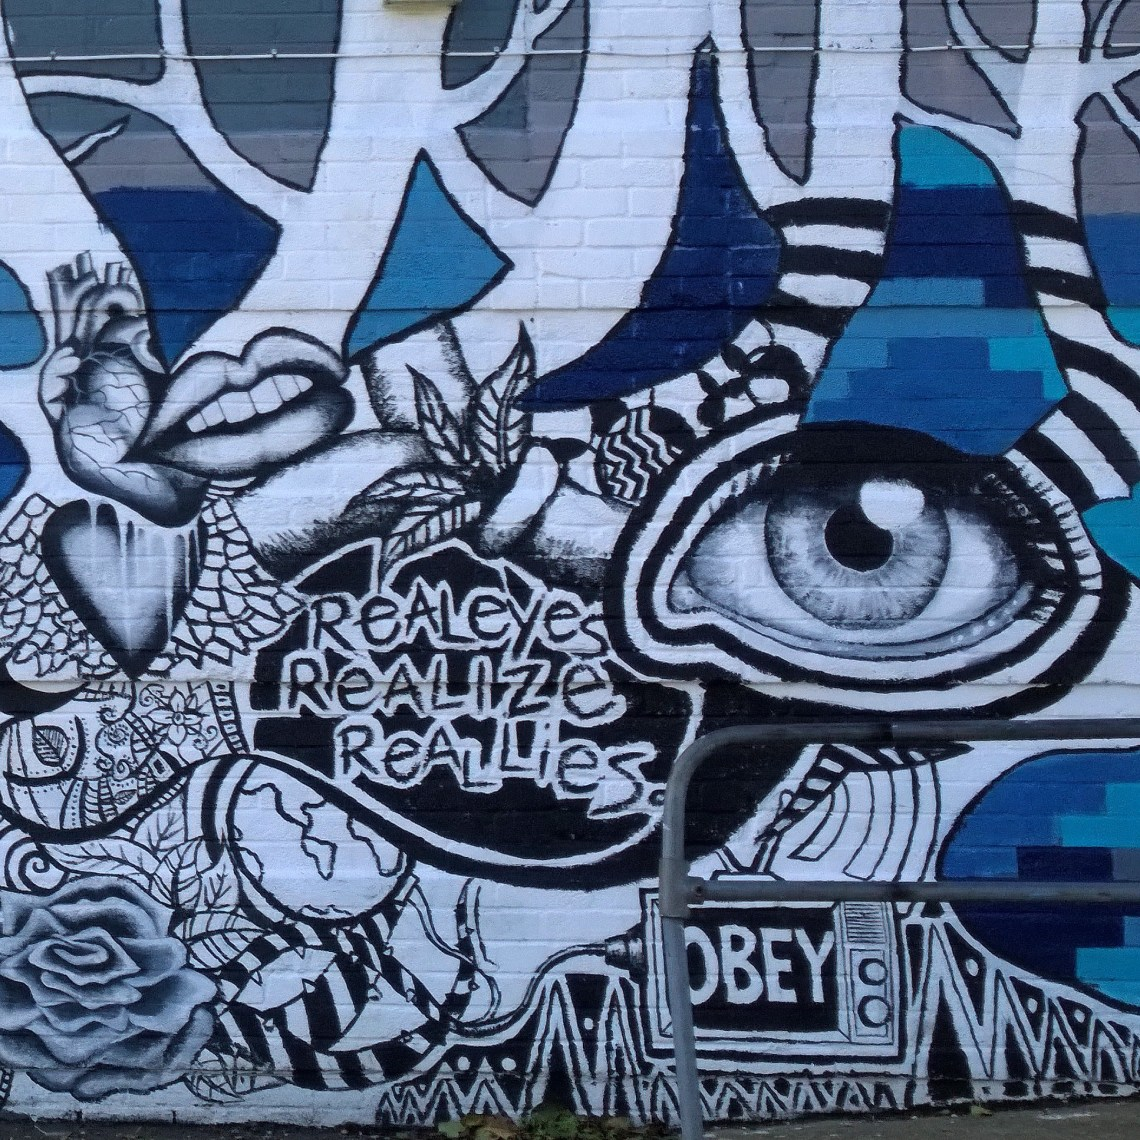 Art by Weardoe on the wall of a nearby building